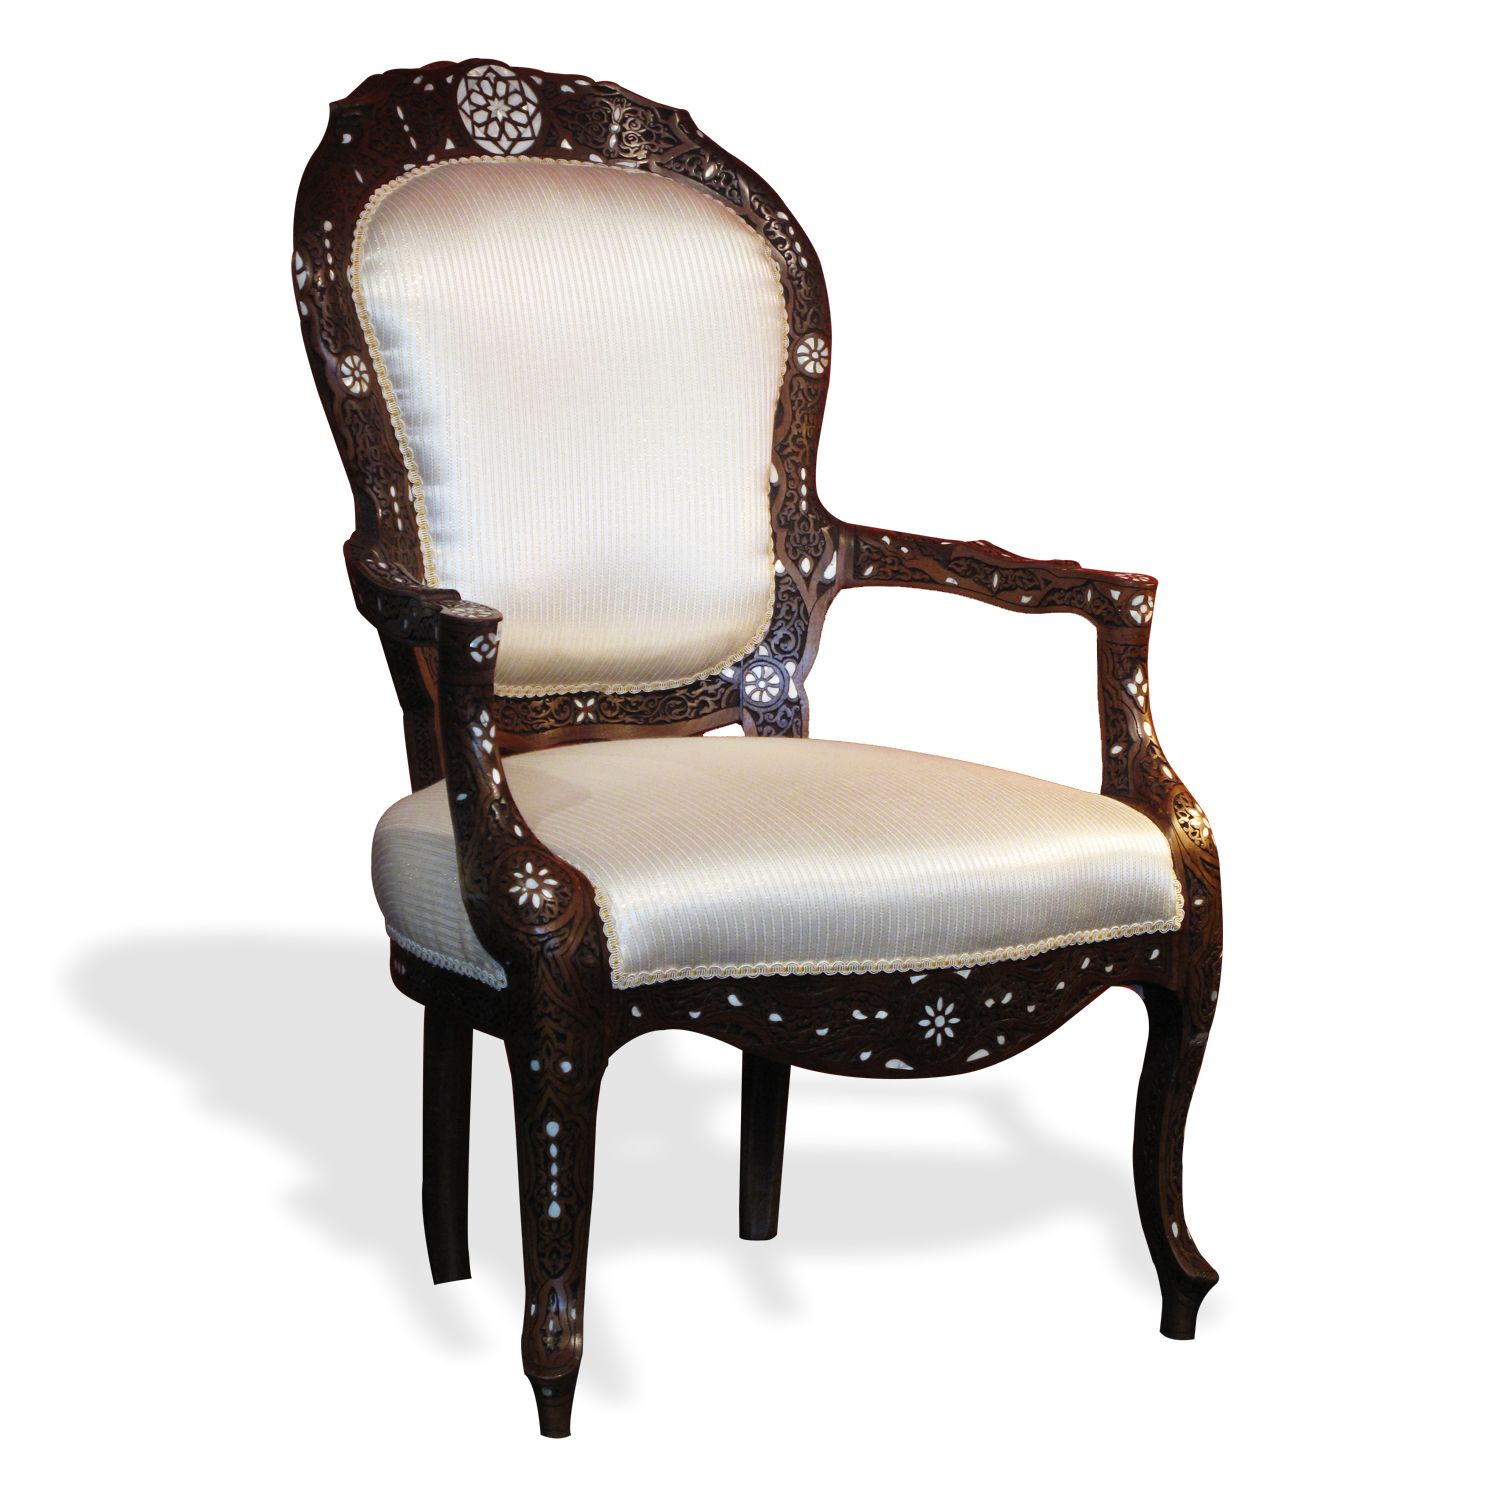 Moroccan U0026 Syrian Furniture   Syrian Moroccan Chair With Mother Of Pearl  Inlay.